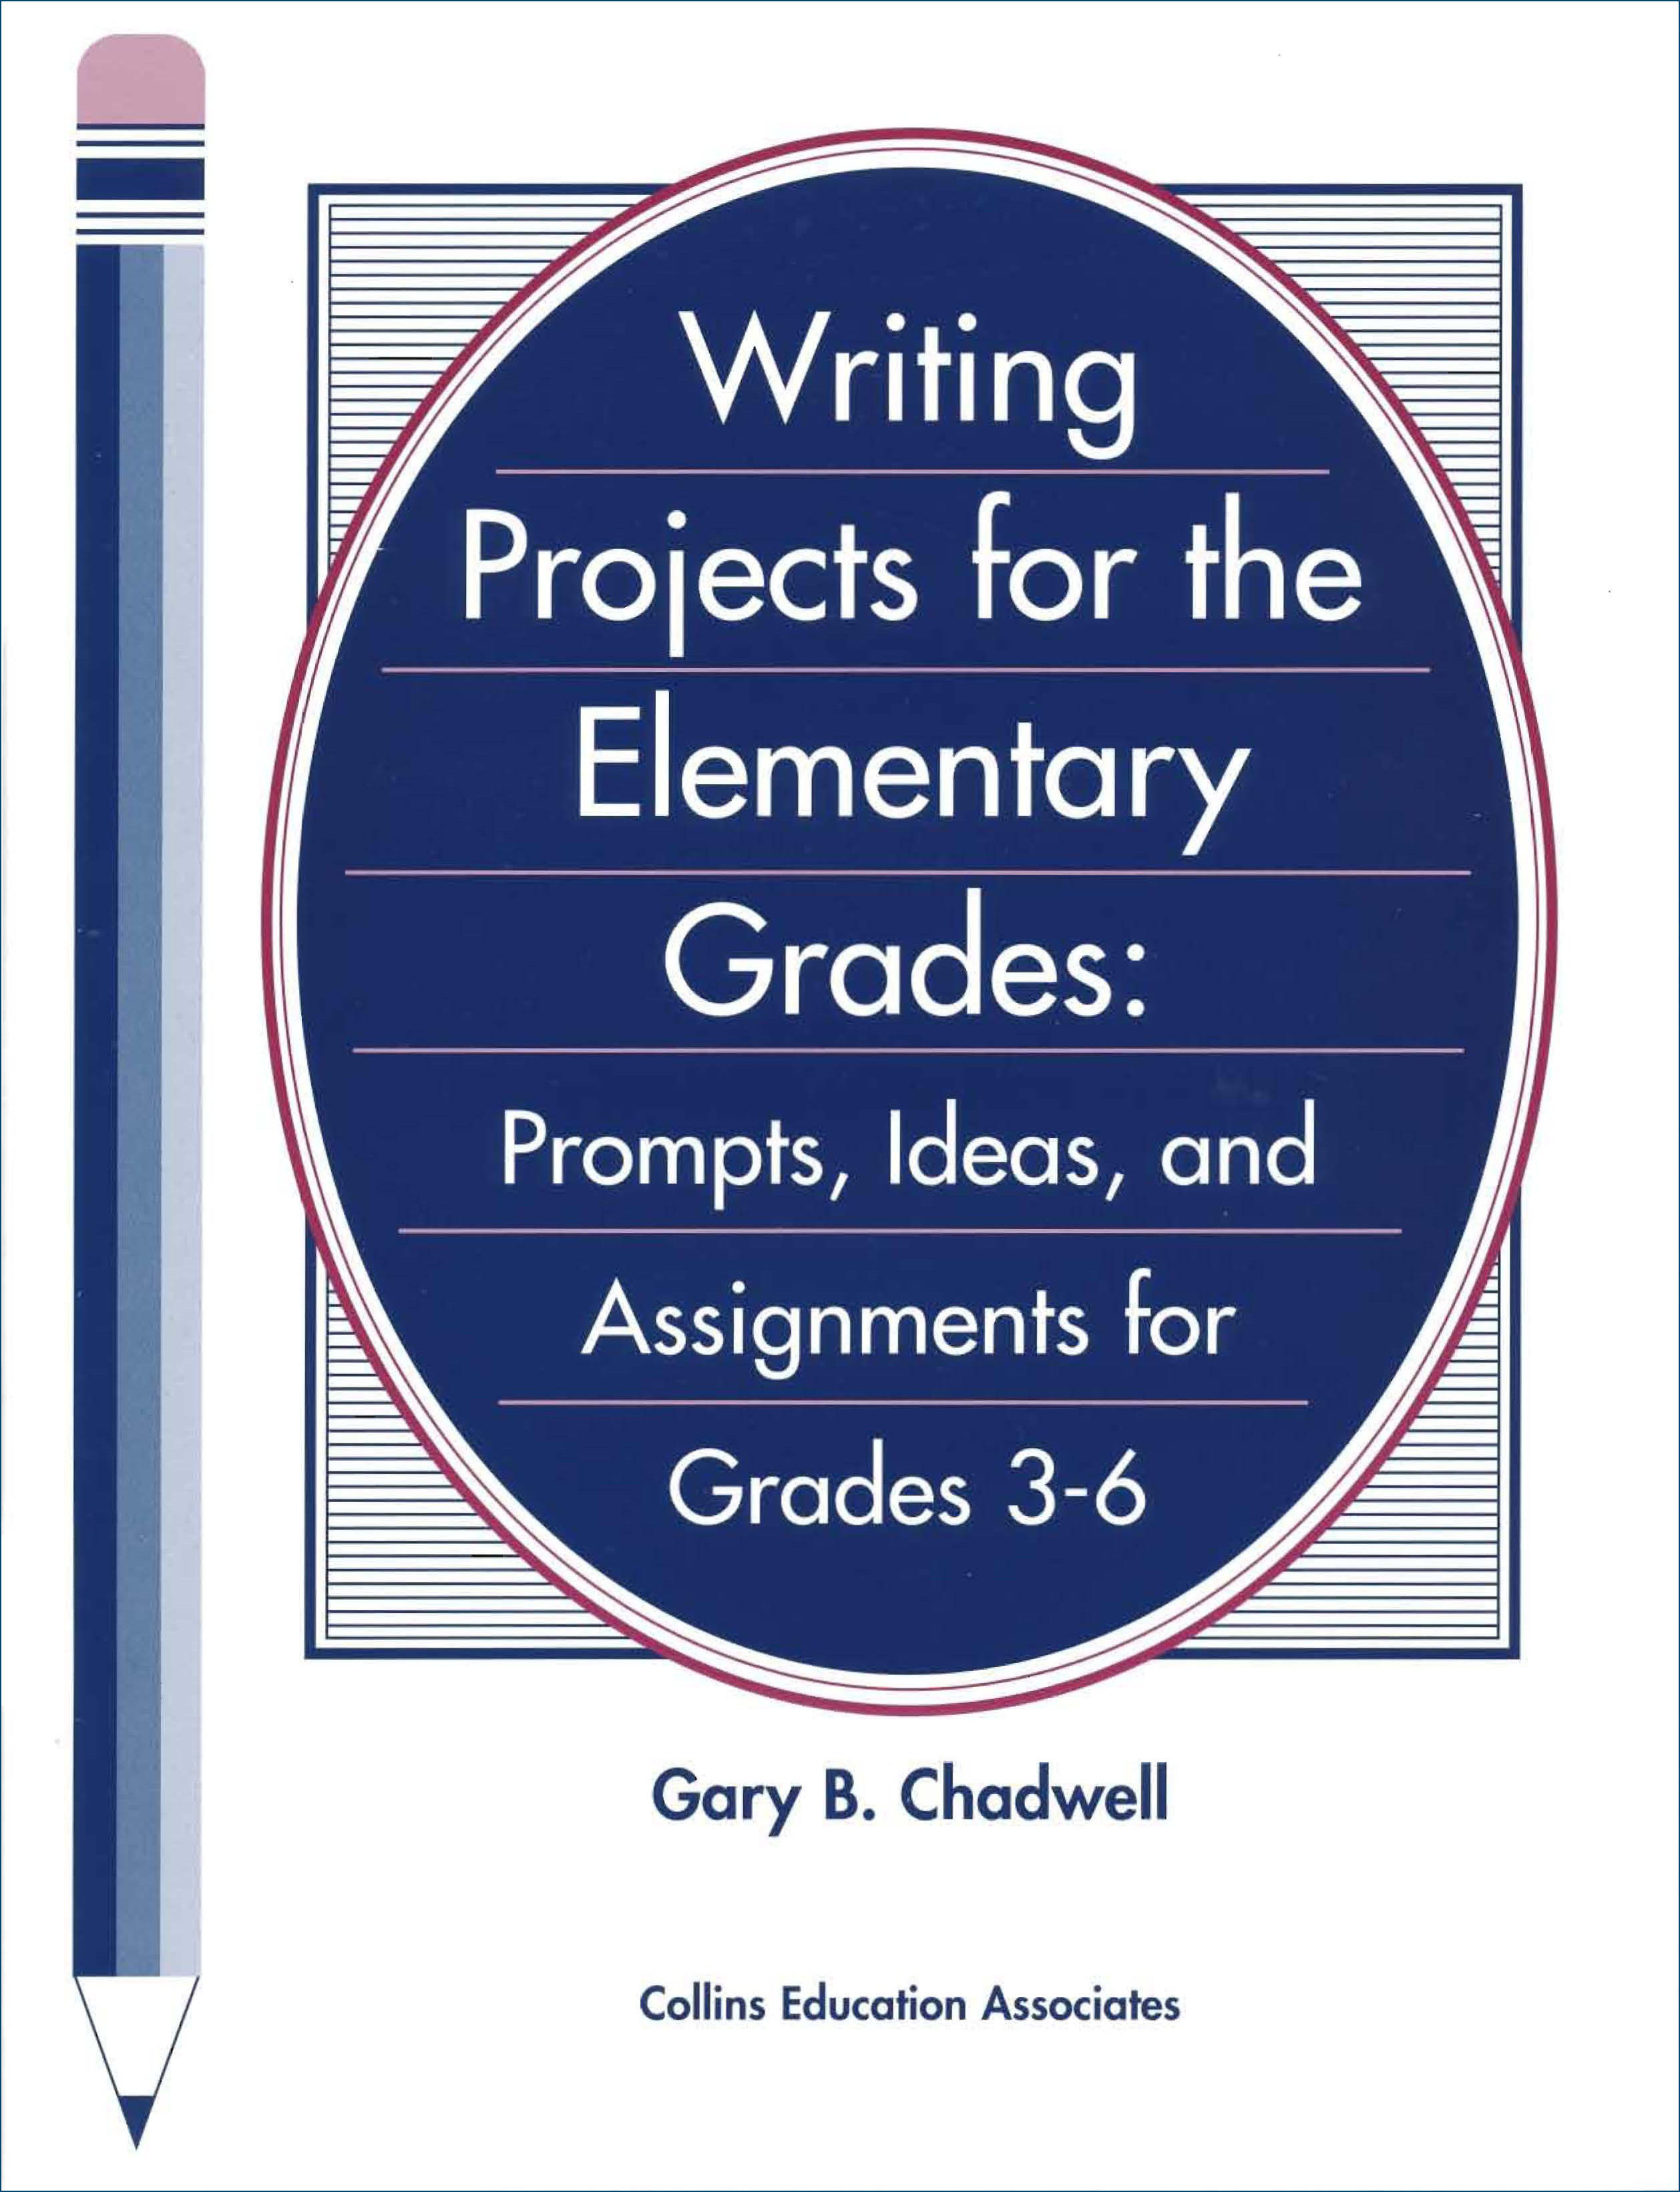 Sample Essay For Elementary Students